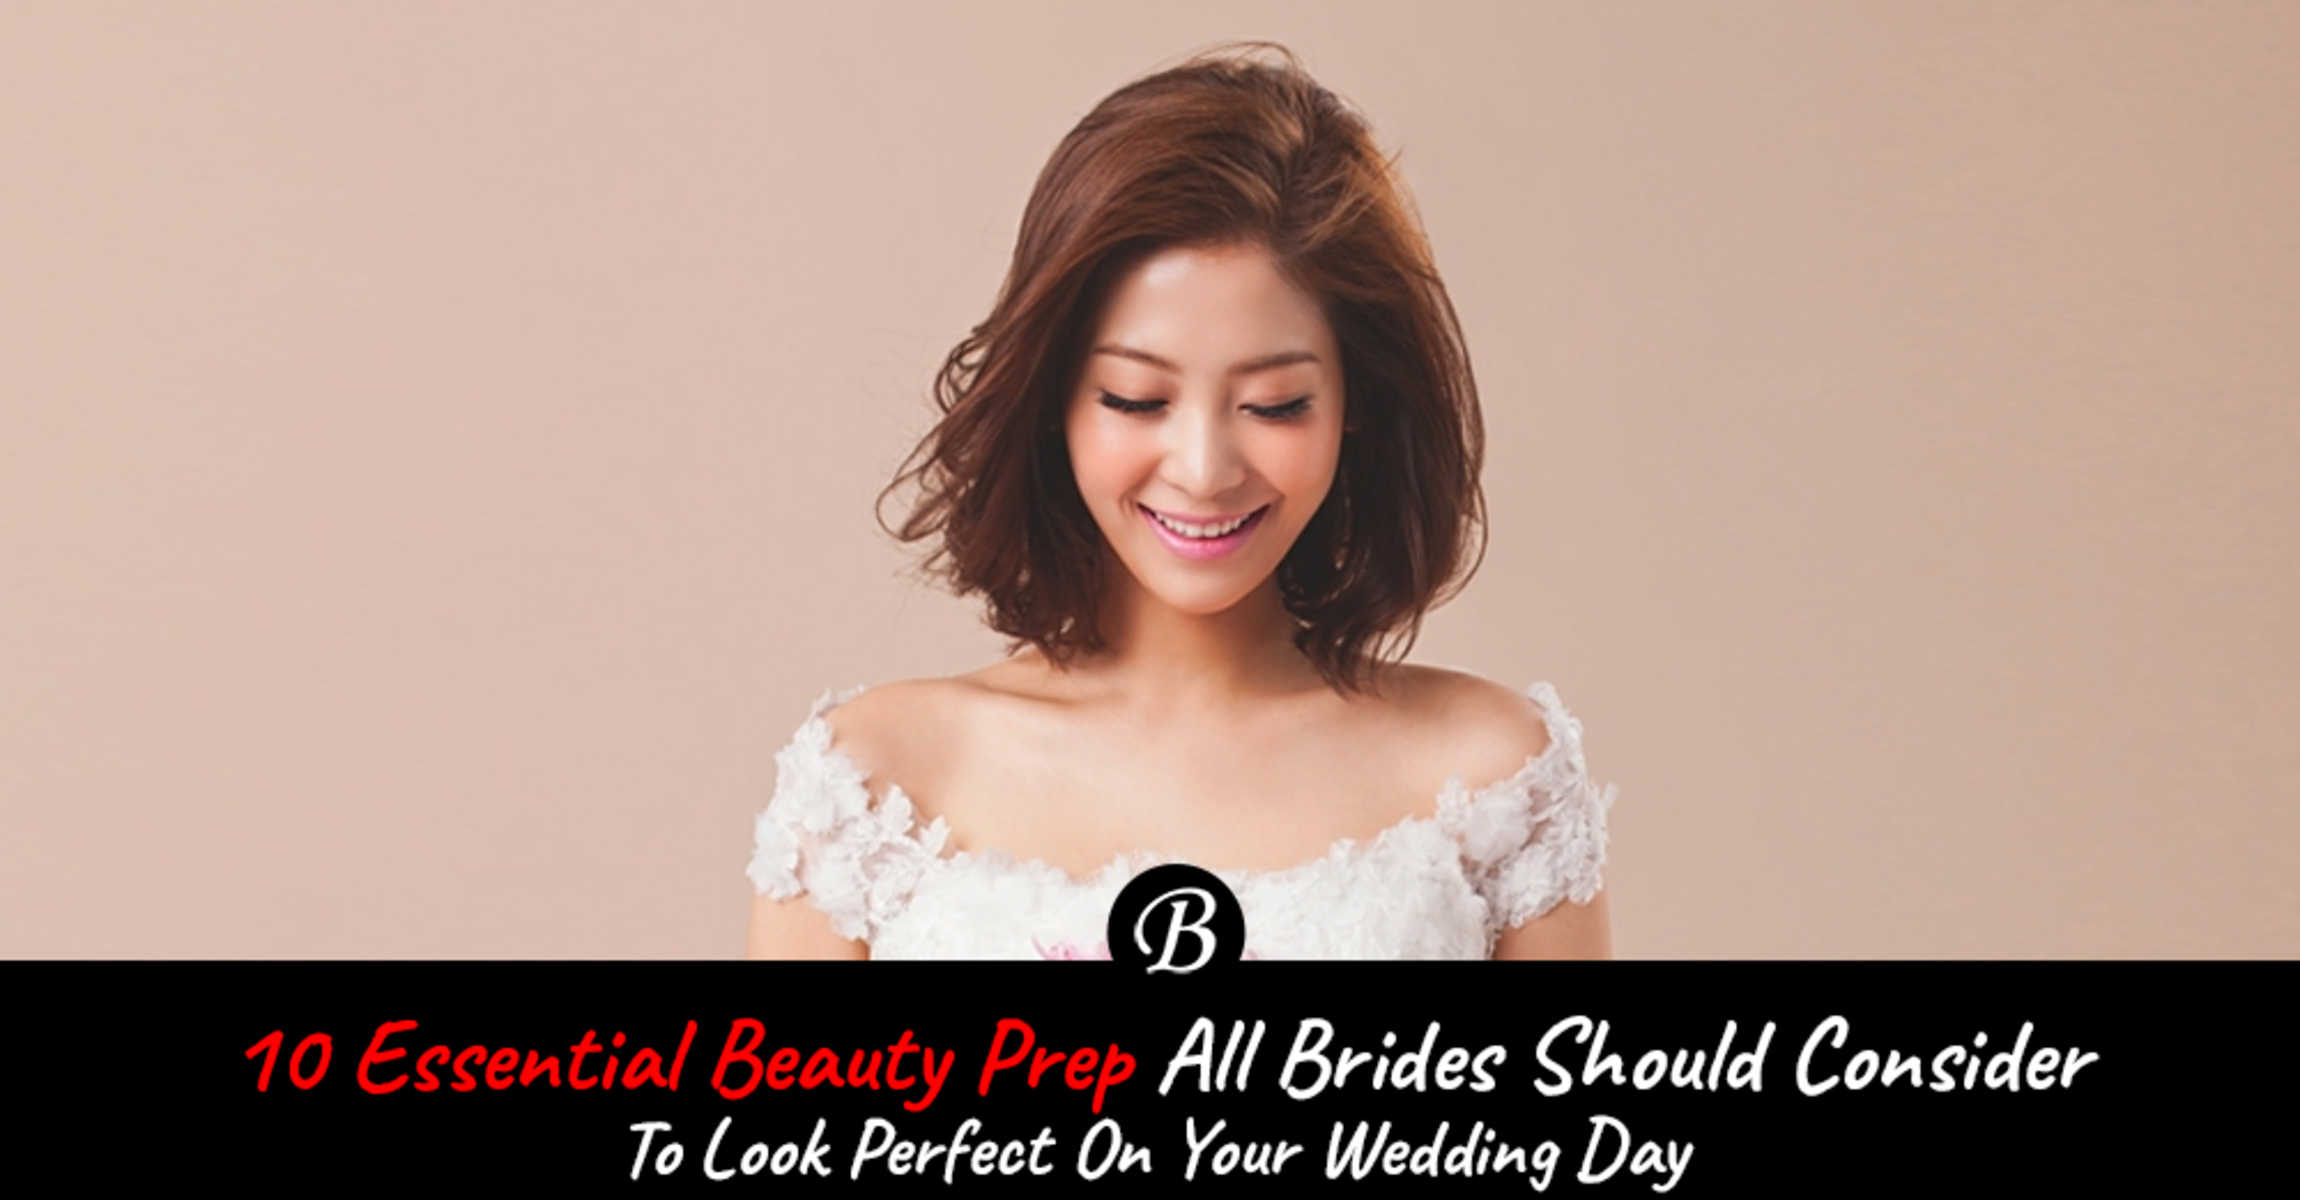 10 essential beauty prep brides should consider to look